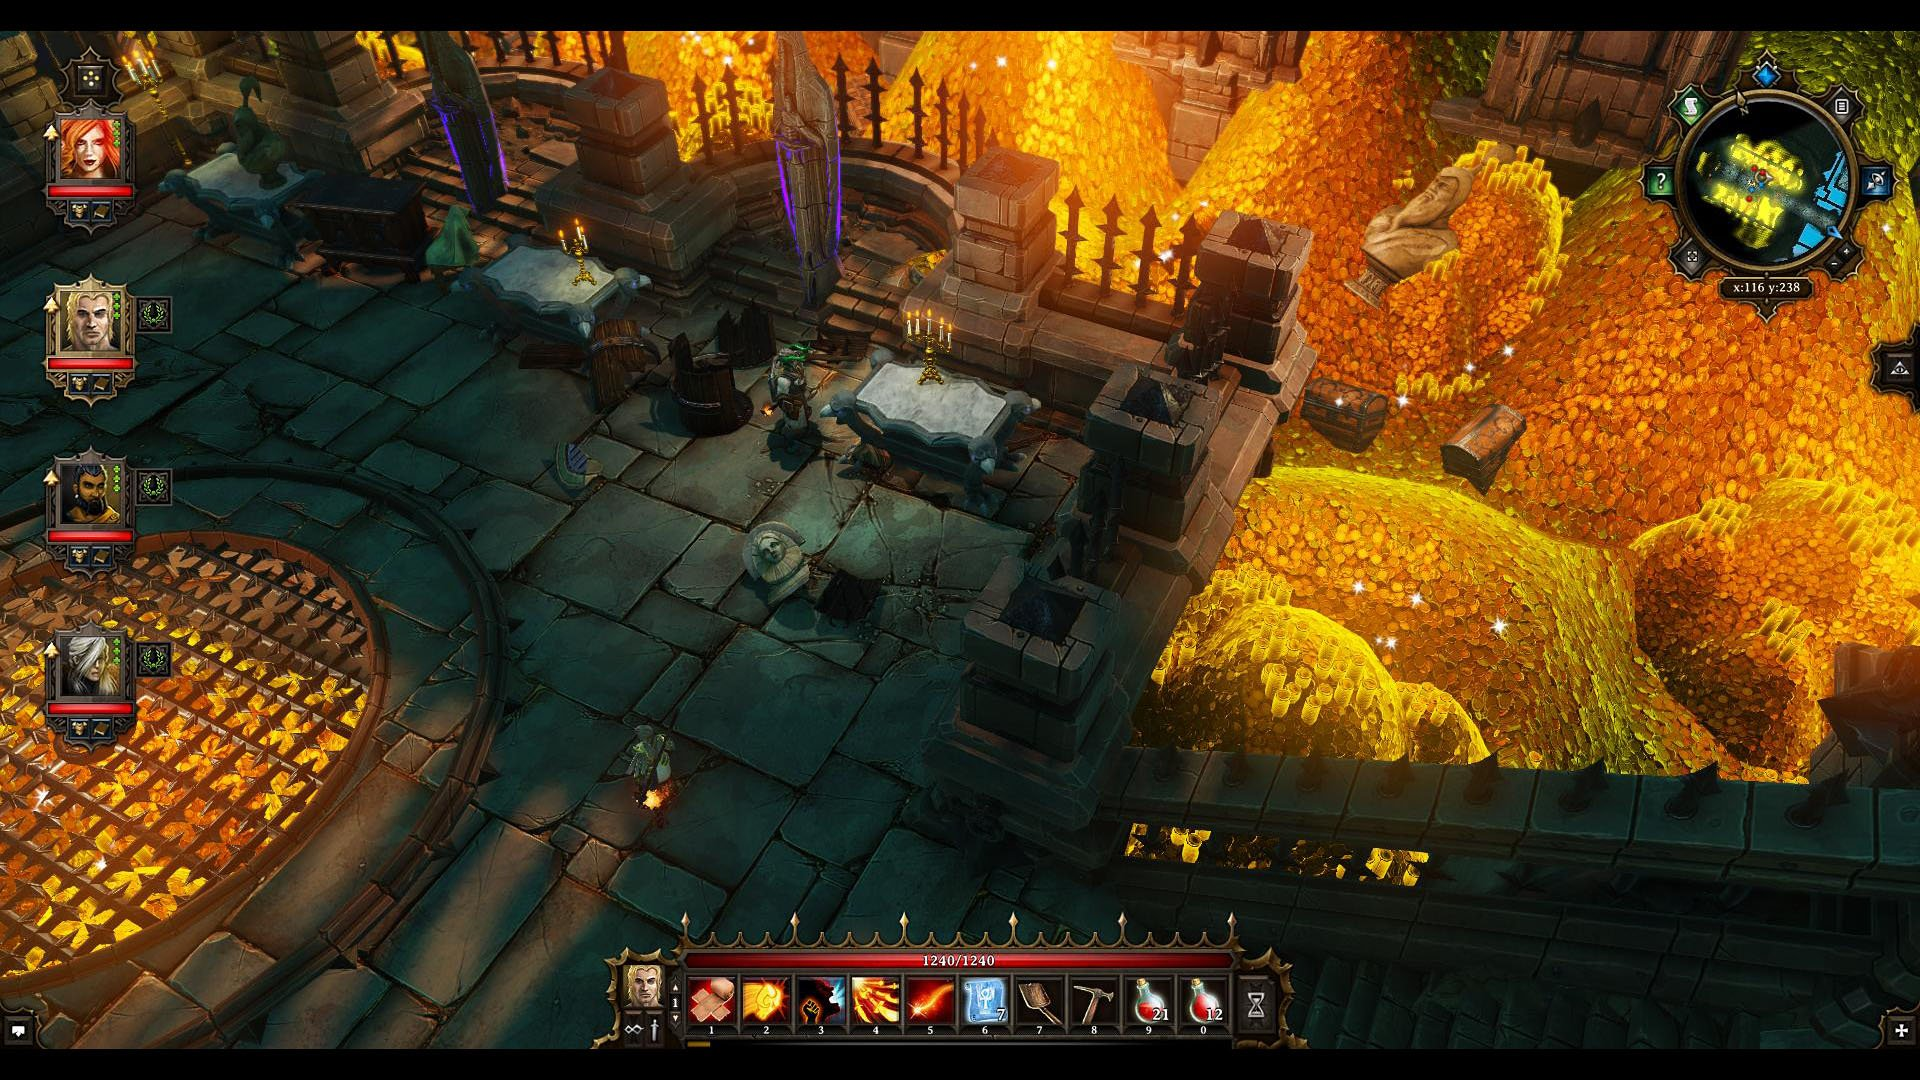 Divinity-Original-Sin-Enhanced-Edition-Screenshots-5